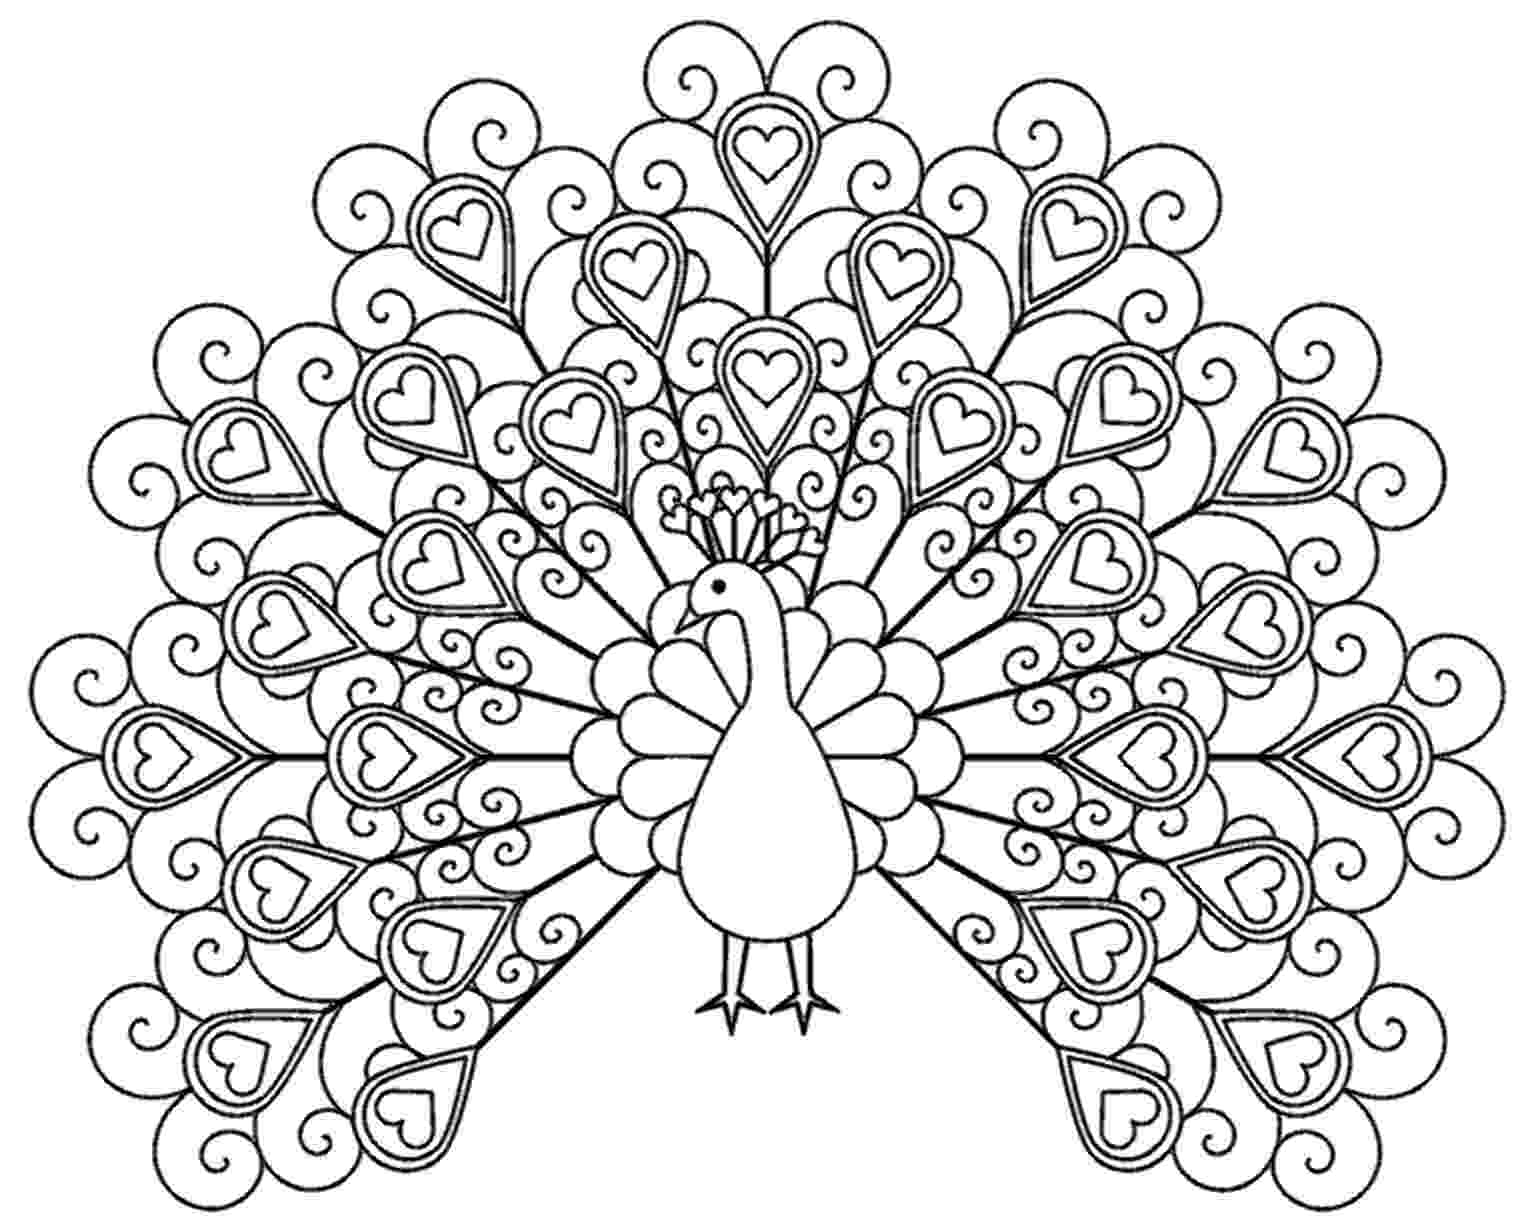 colouring picture of peacock colouring pages adult coloring pages of the tangled peacock colouring picture of peacock